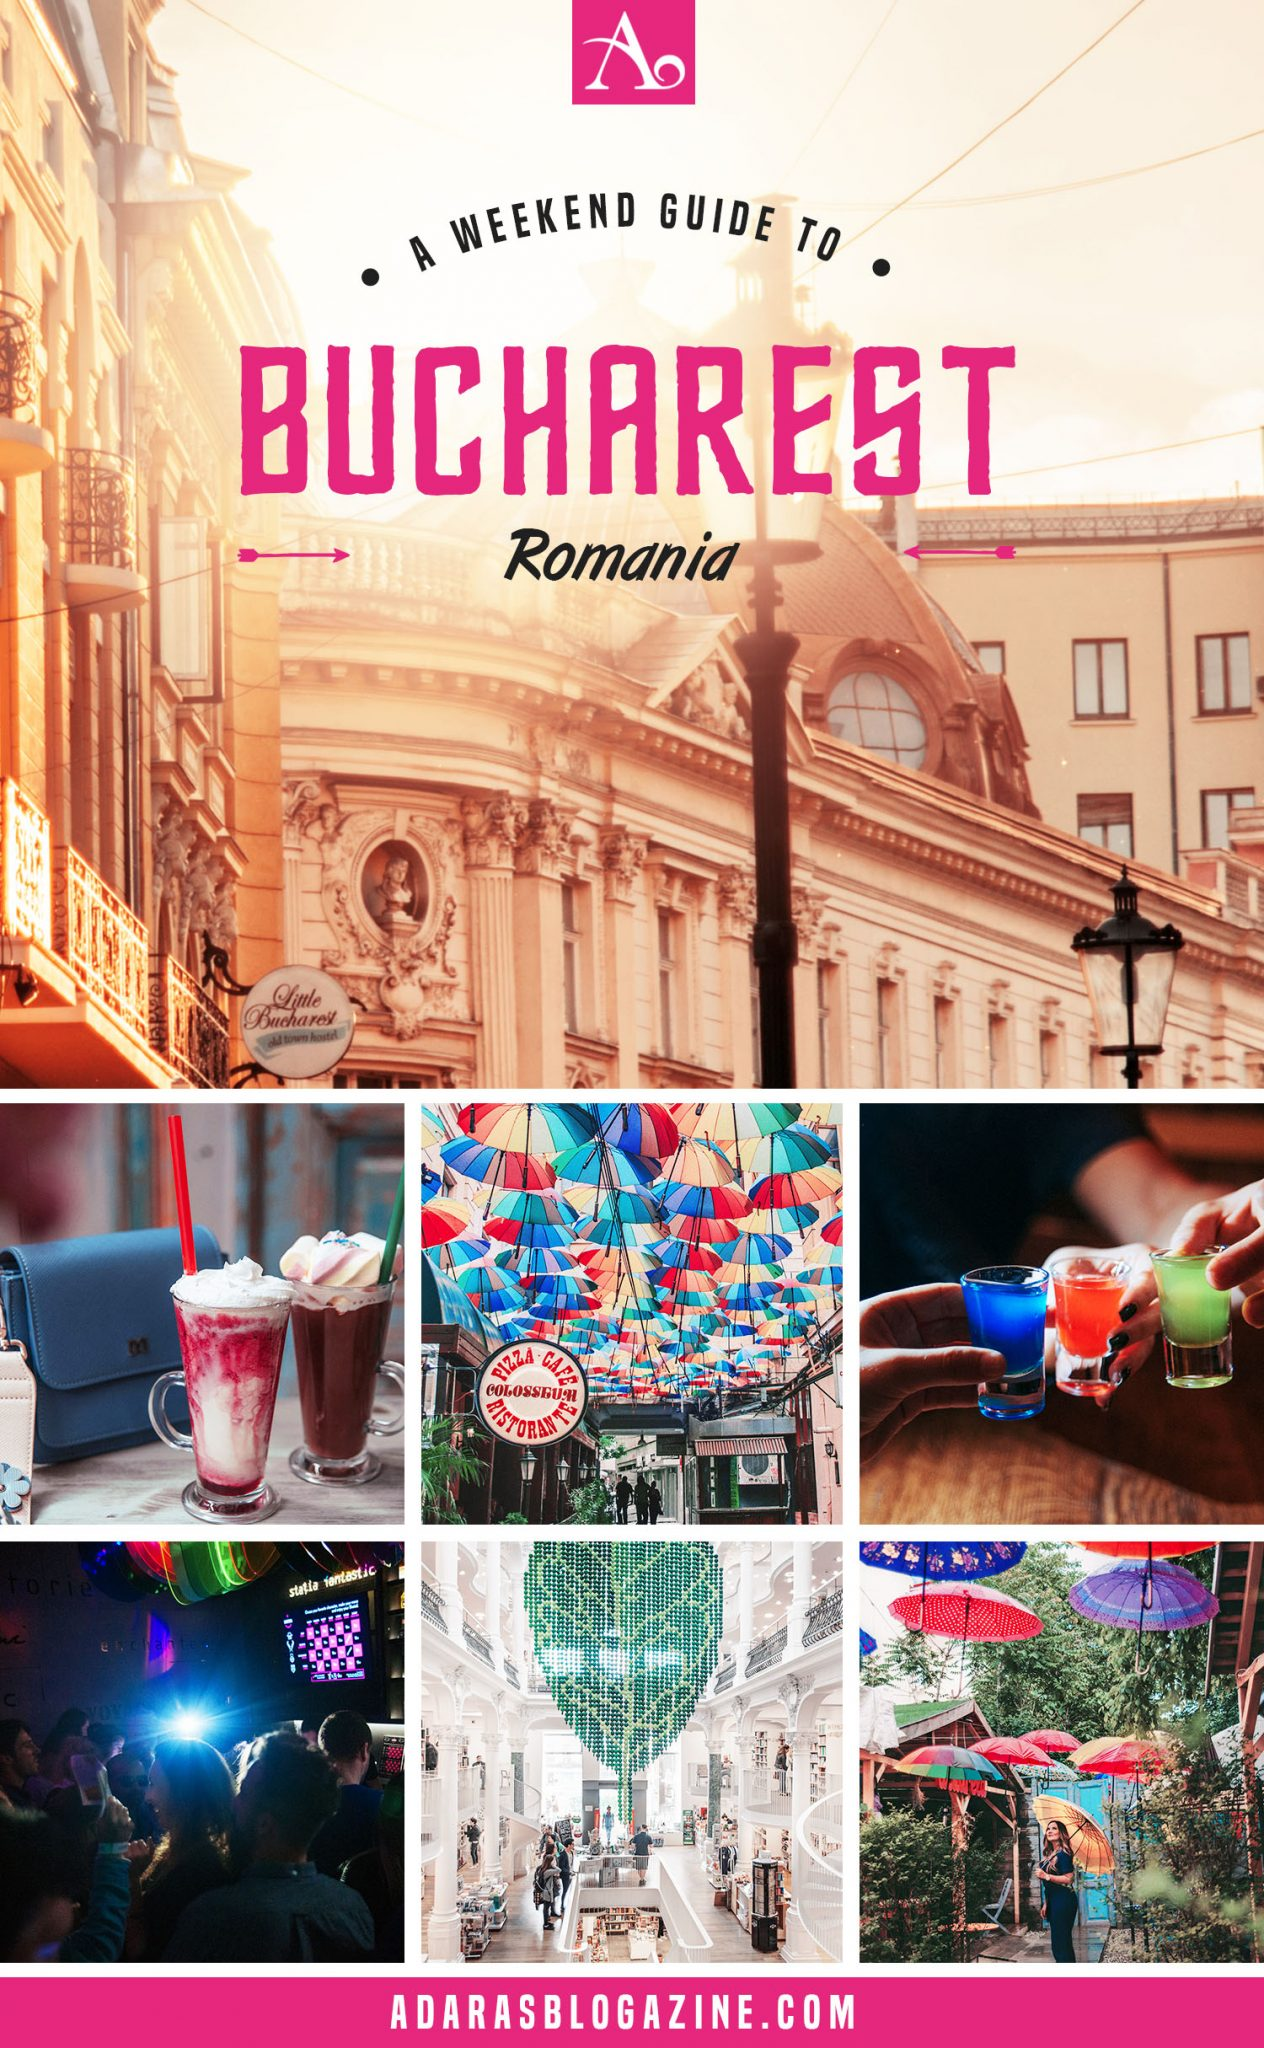 Experience Bucharest Travel Guide: What to see & What to do in Romania's Capital